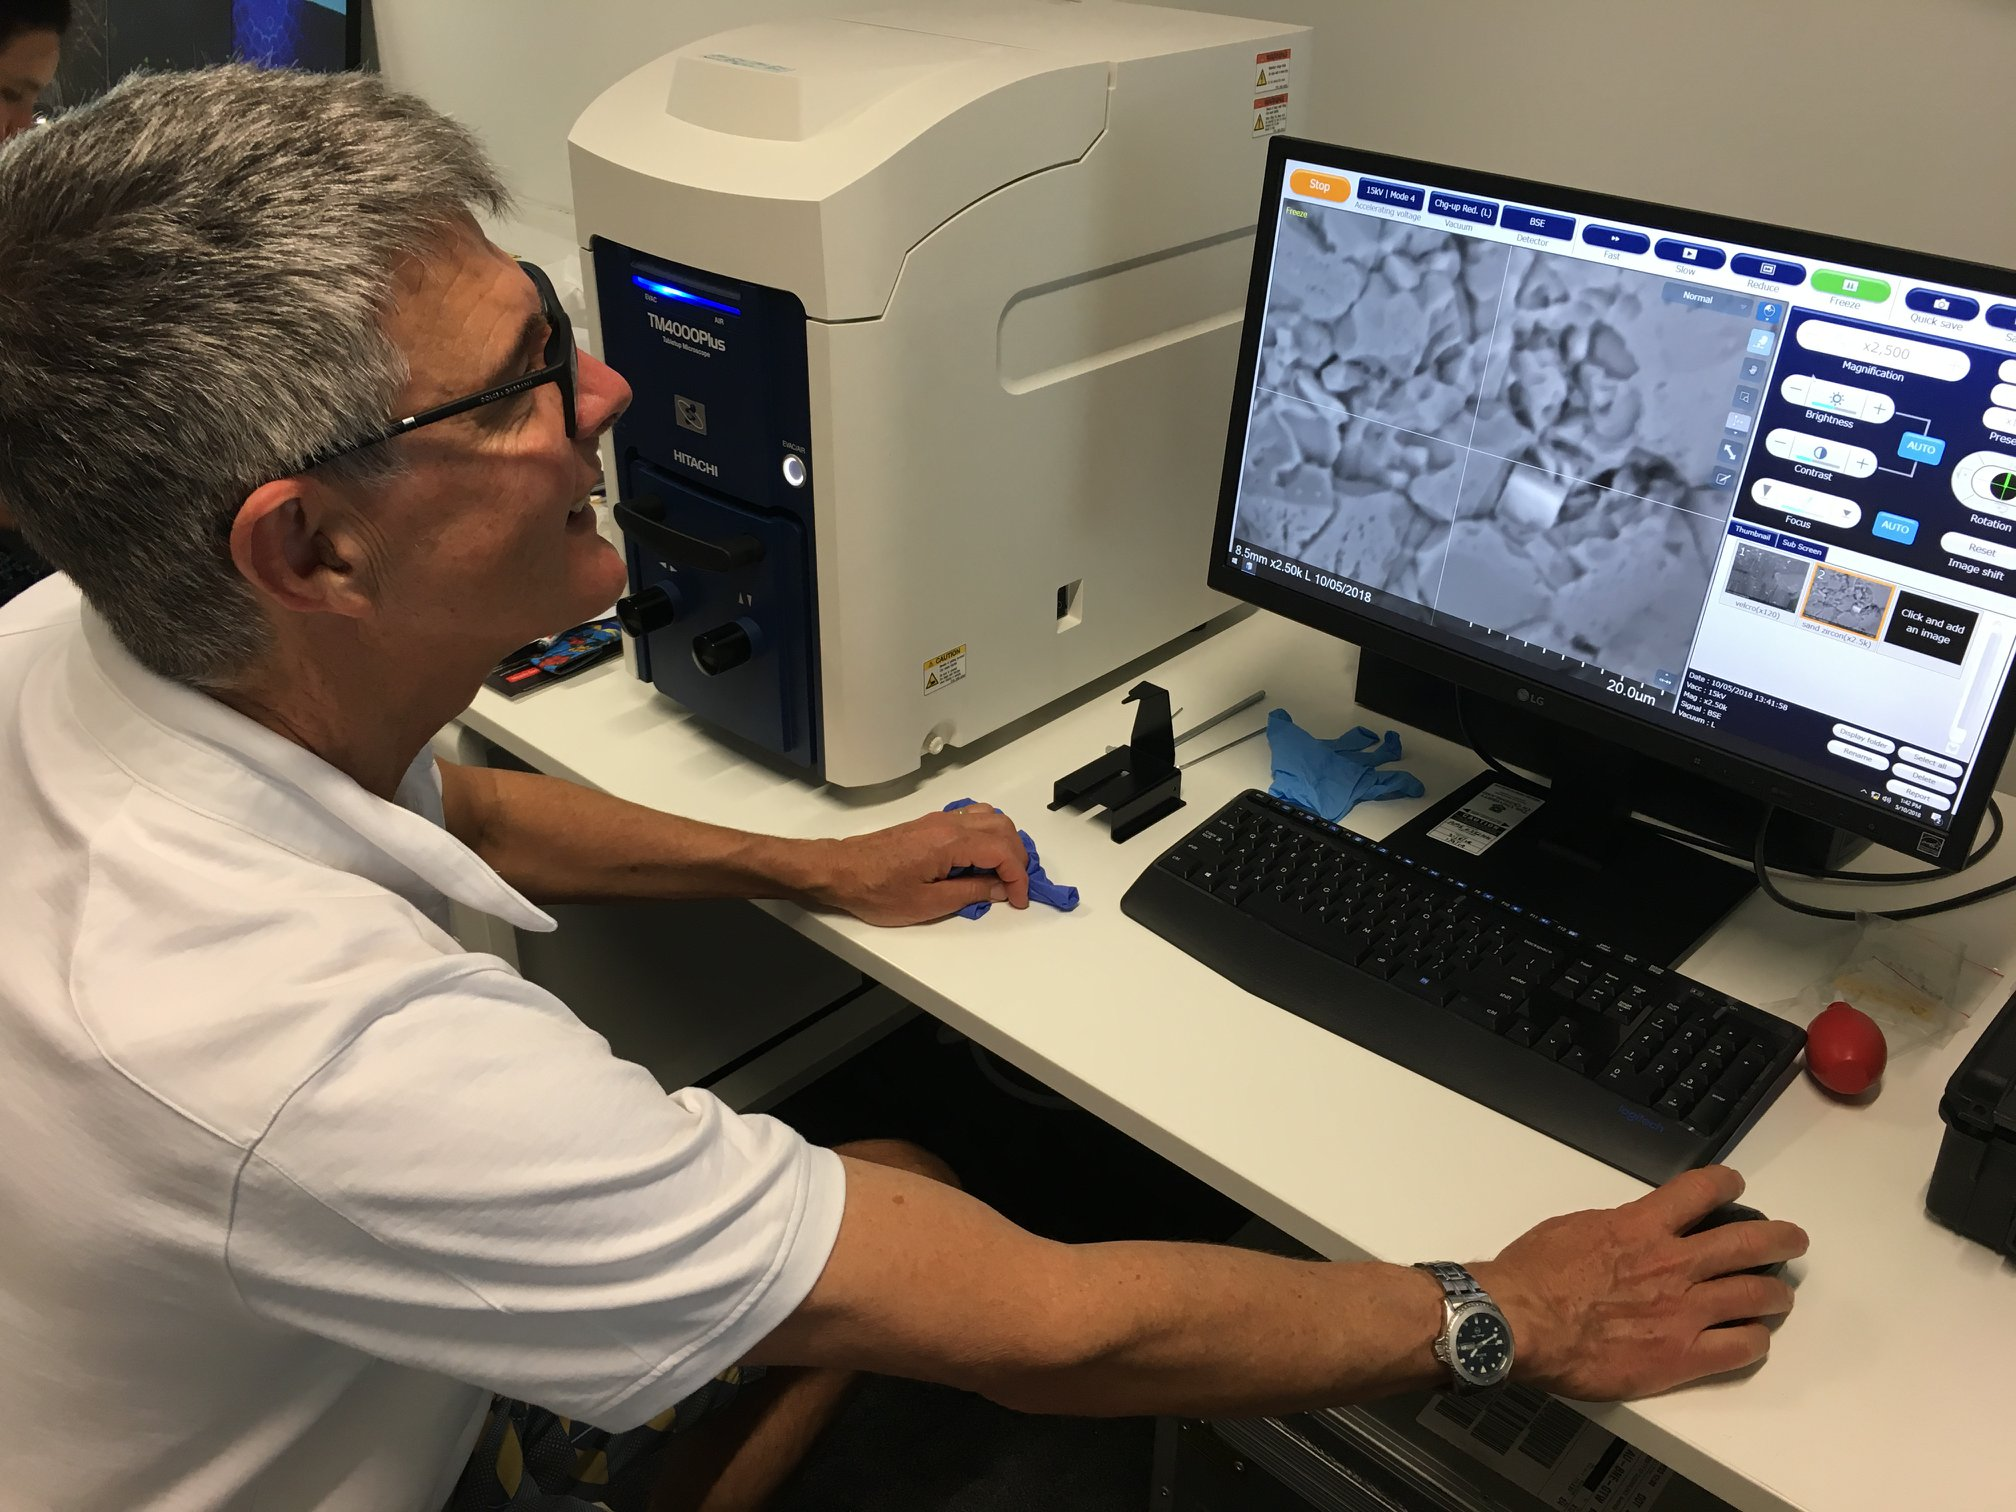 New experiences in the future using a Scanning Electron Microscope!